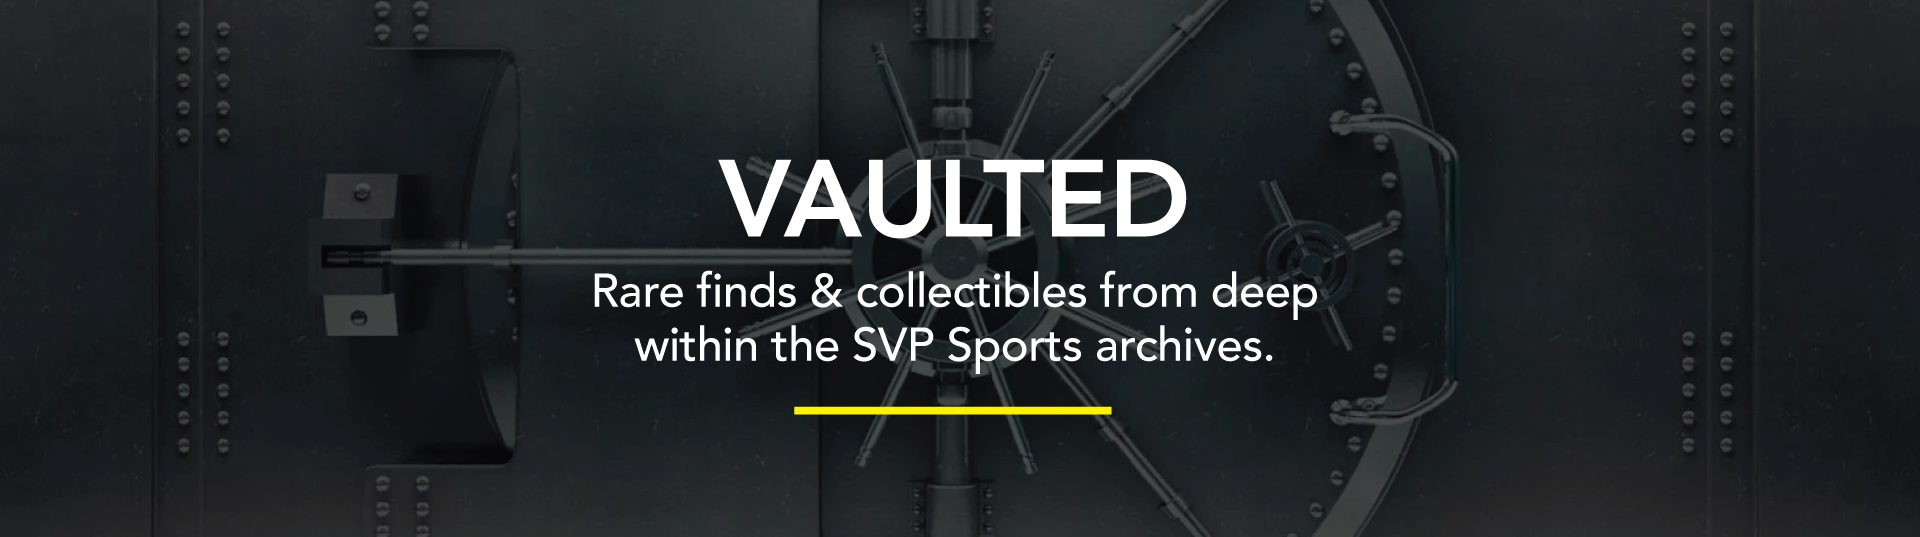 SVP Vaulted - Rare Finds & Collectibles